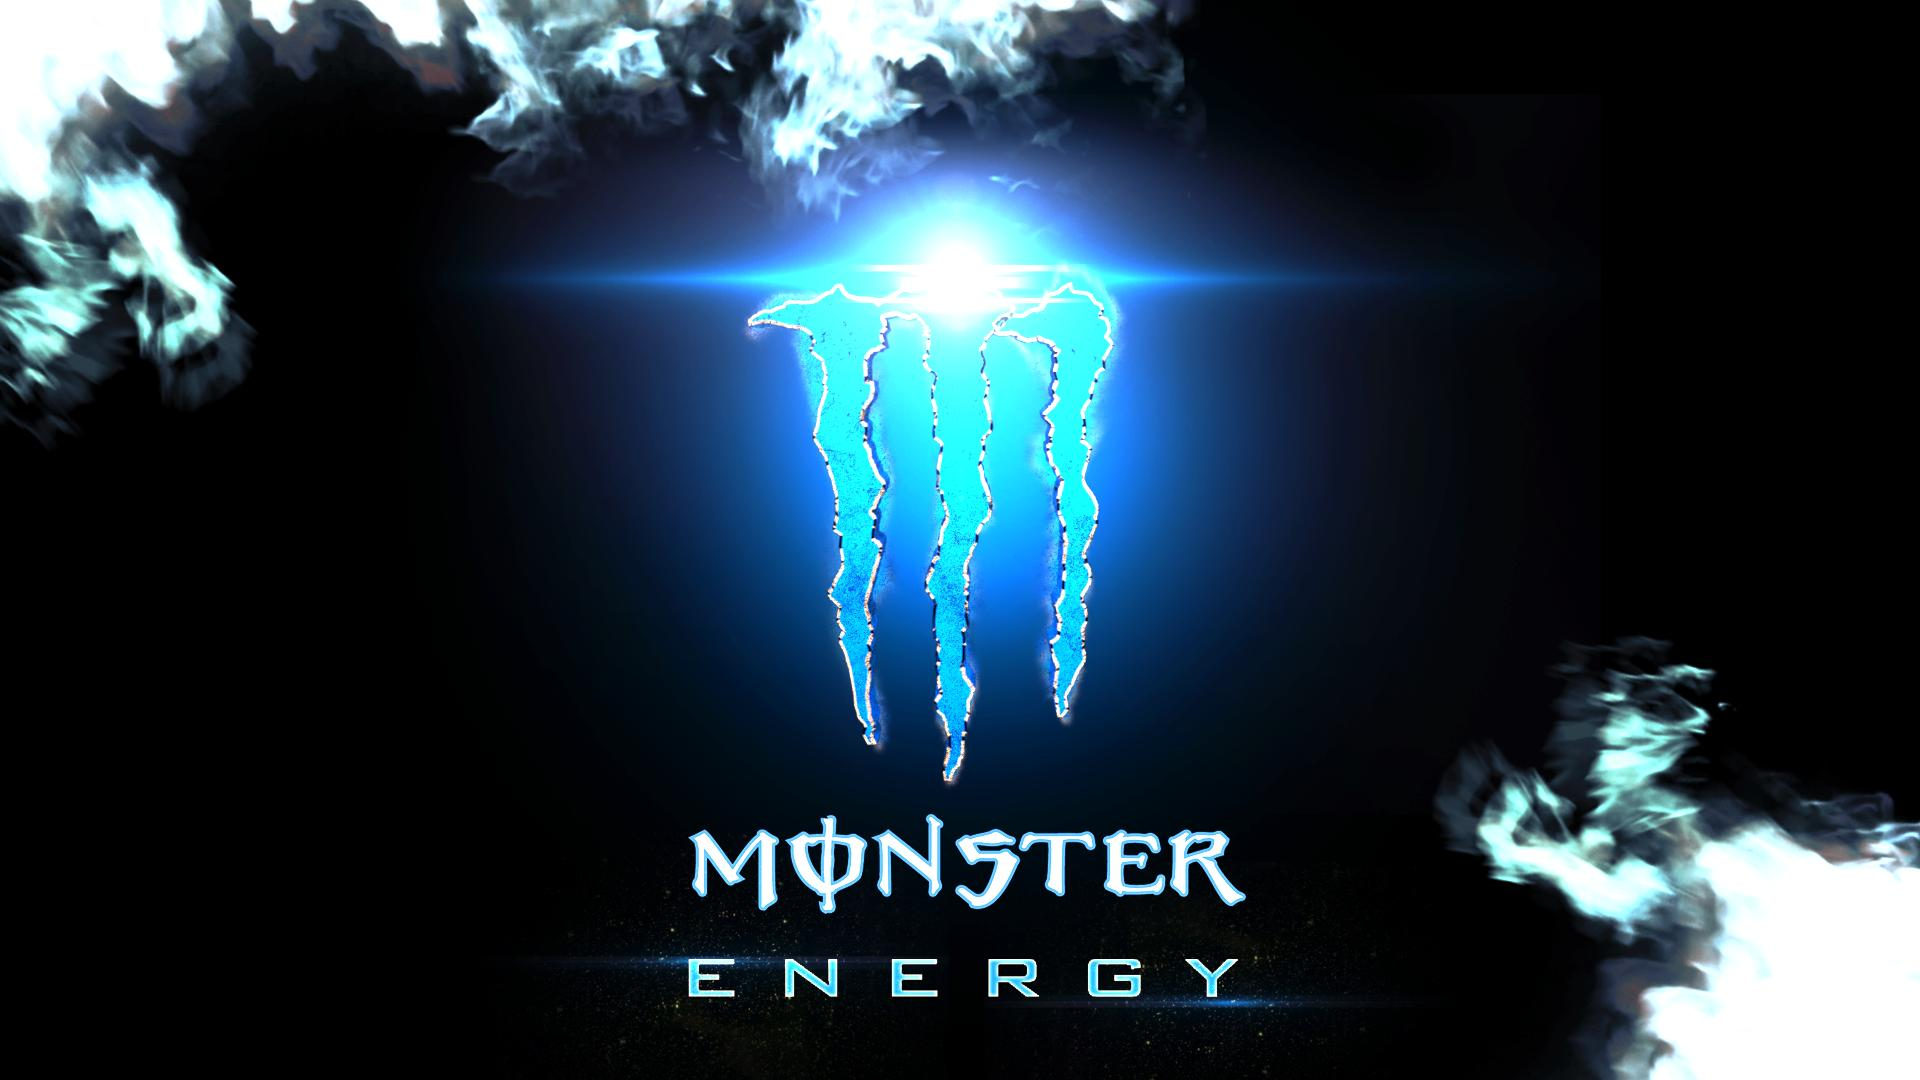 Monster Energy Wallpaper Free Download Sf Wallpaper